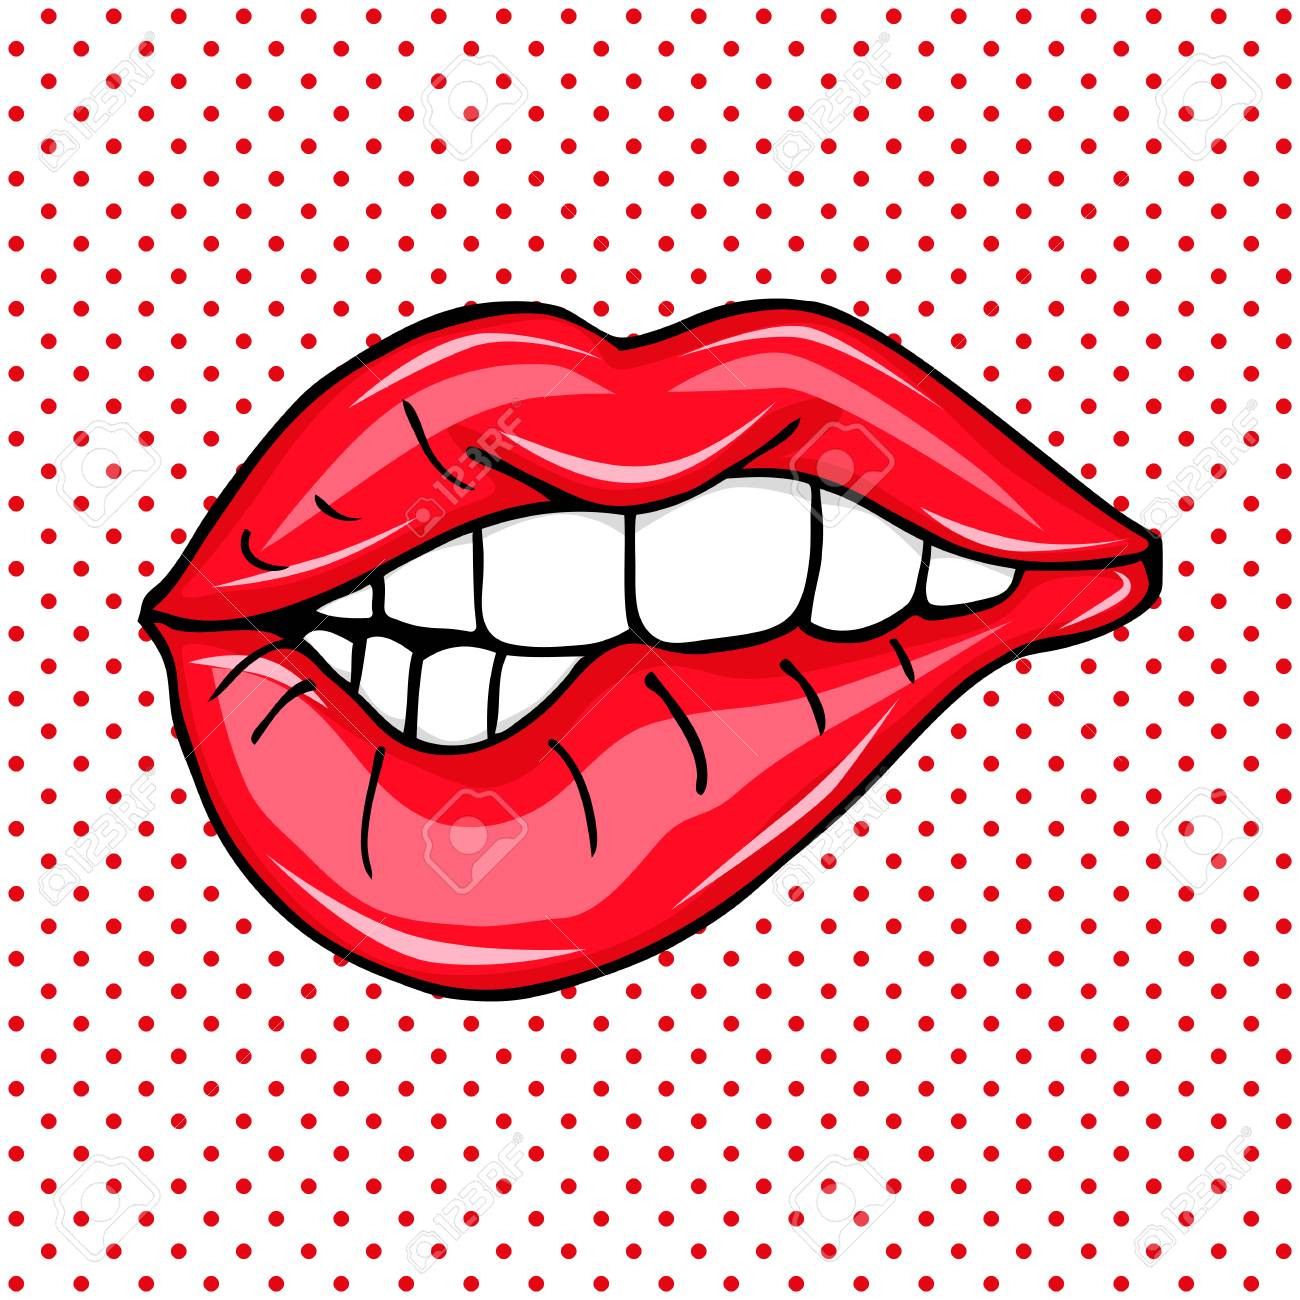 Sweet Sexy Pop Art Pair Of Glossy Vector Lips Artwork Backgrounds Royalty Free Cliparts Vectors And Stock Illustration Image 117669058